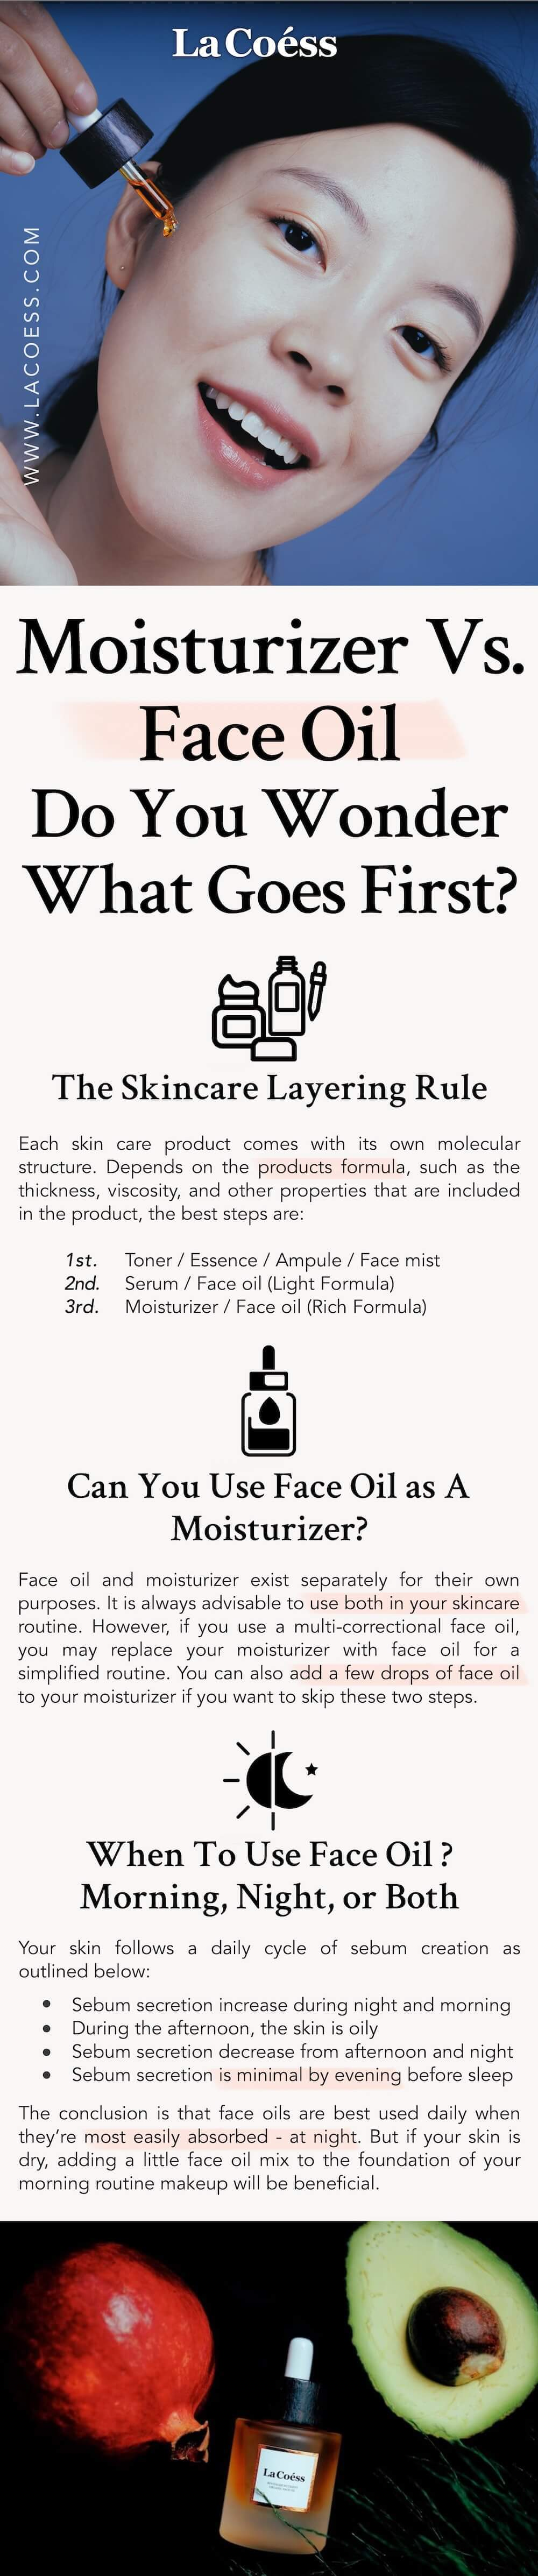 Moisturizer Vs. Face Oil, Do You Wonder What Goes First?